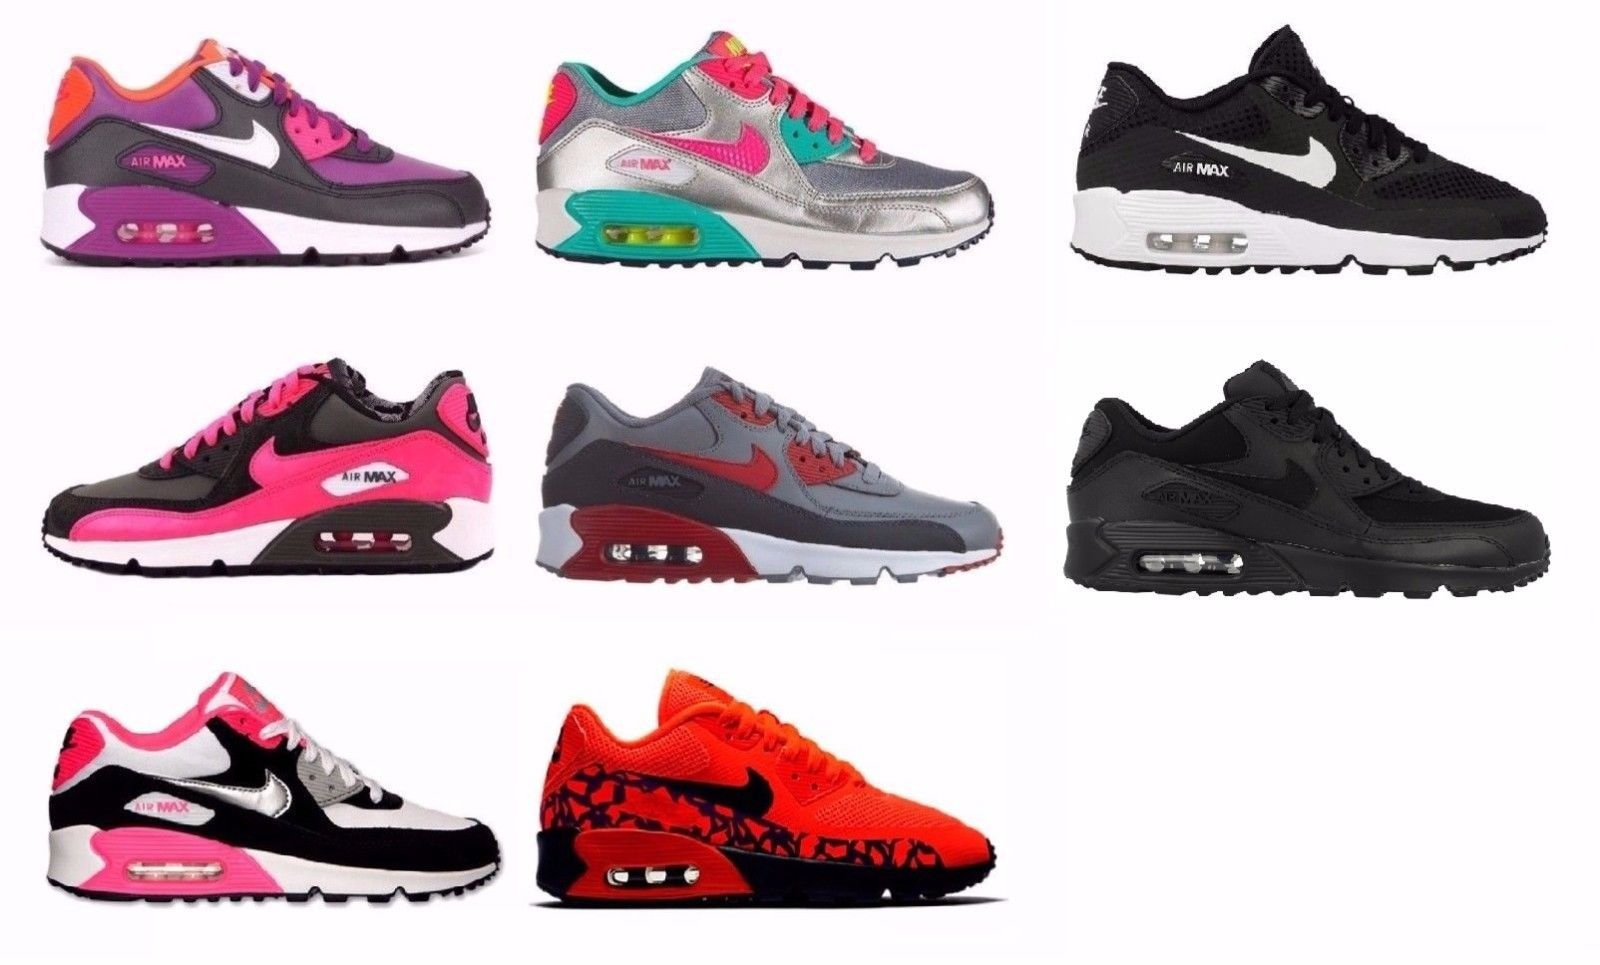 reputable site fa0b0 2c93b ... wholesale girls shoes 57974 nike air max 90 kids youth athletic shoes  345017 833412 97368 d1348